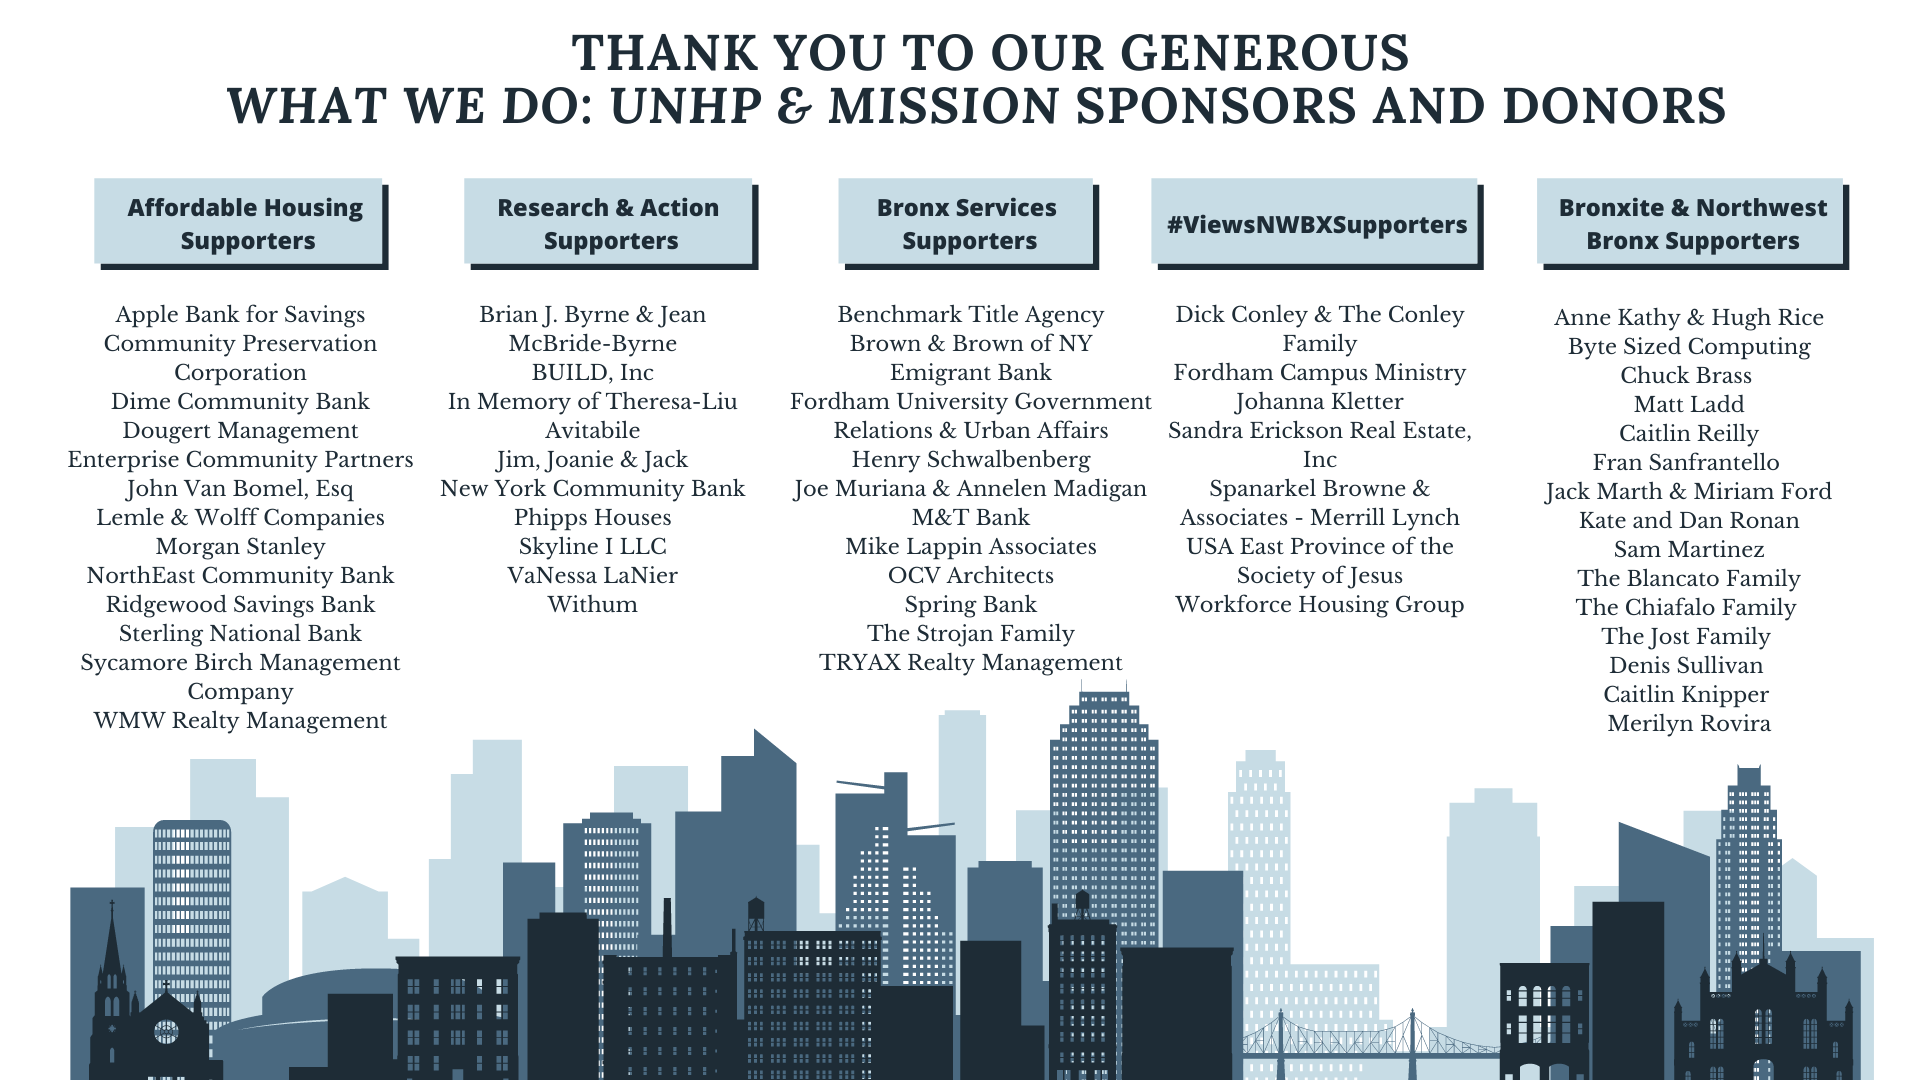 Join our growing list of sponsors and donors! www.unhp.org/donate